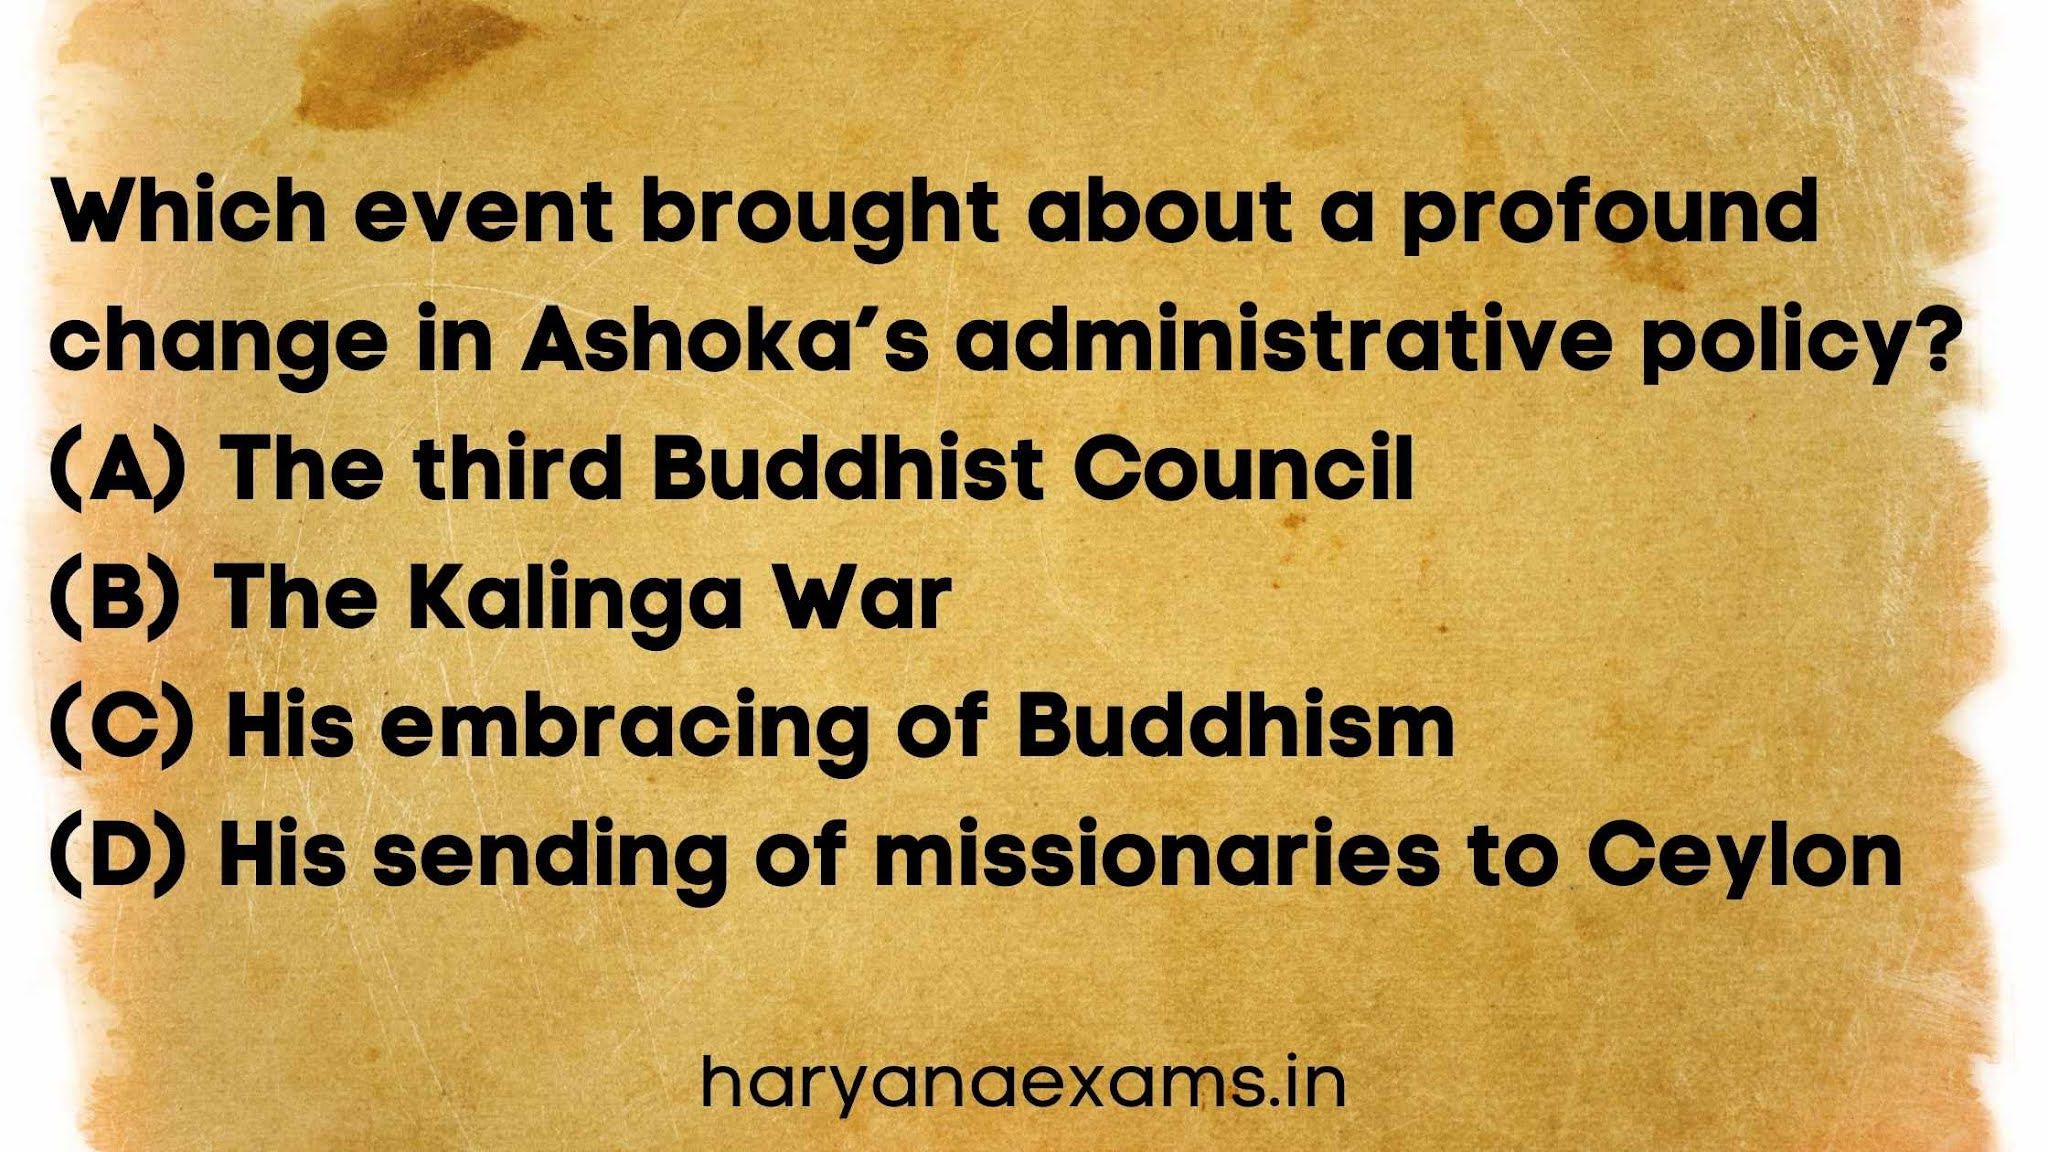 Which event brought about a profound change in Ashoka's administrative policy?   (A) The third Buddhist Council   (B) The Kalinga War   (C) His embracing of Buddhism   (D) His sending of missionaries to Ceylon